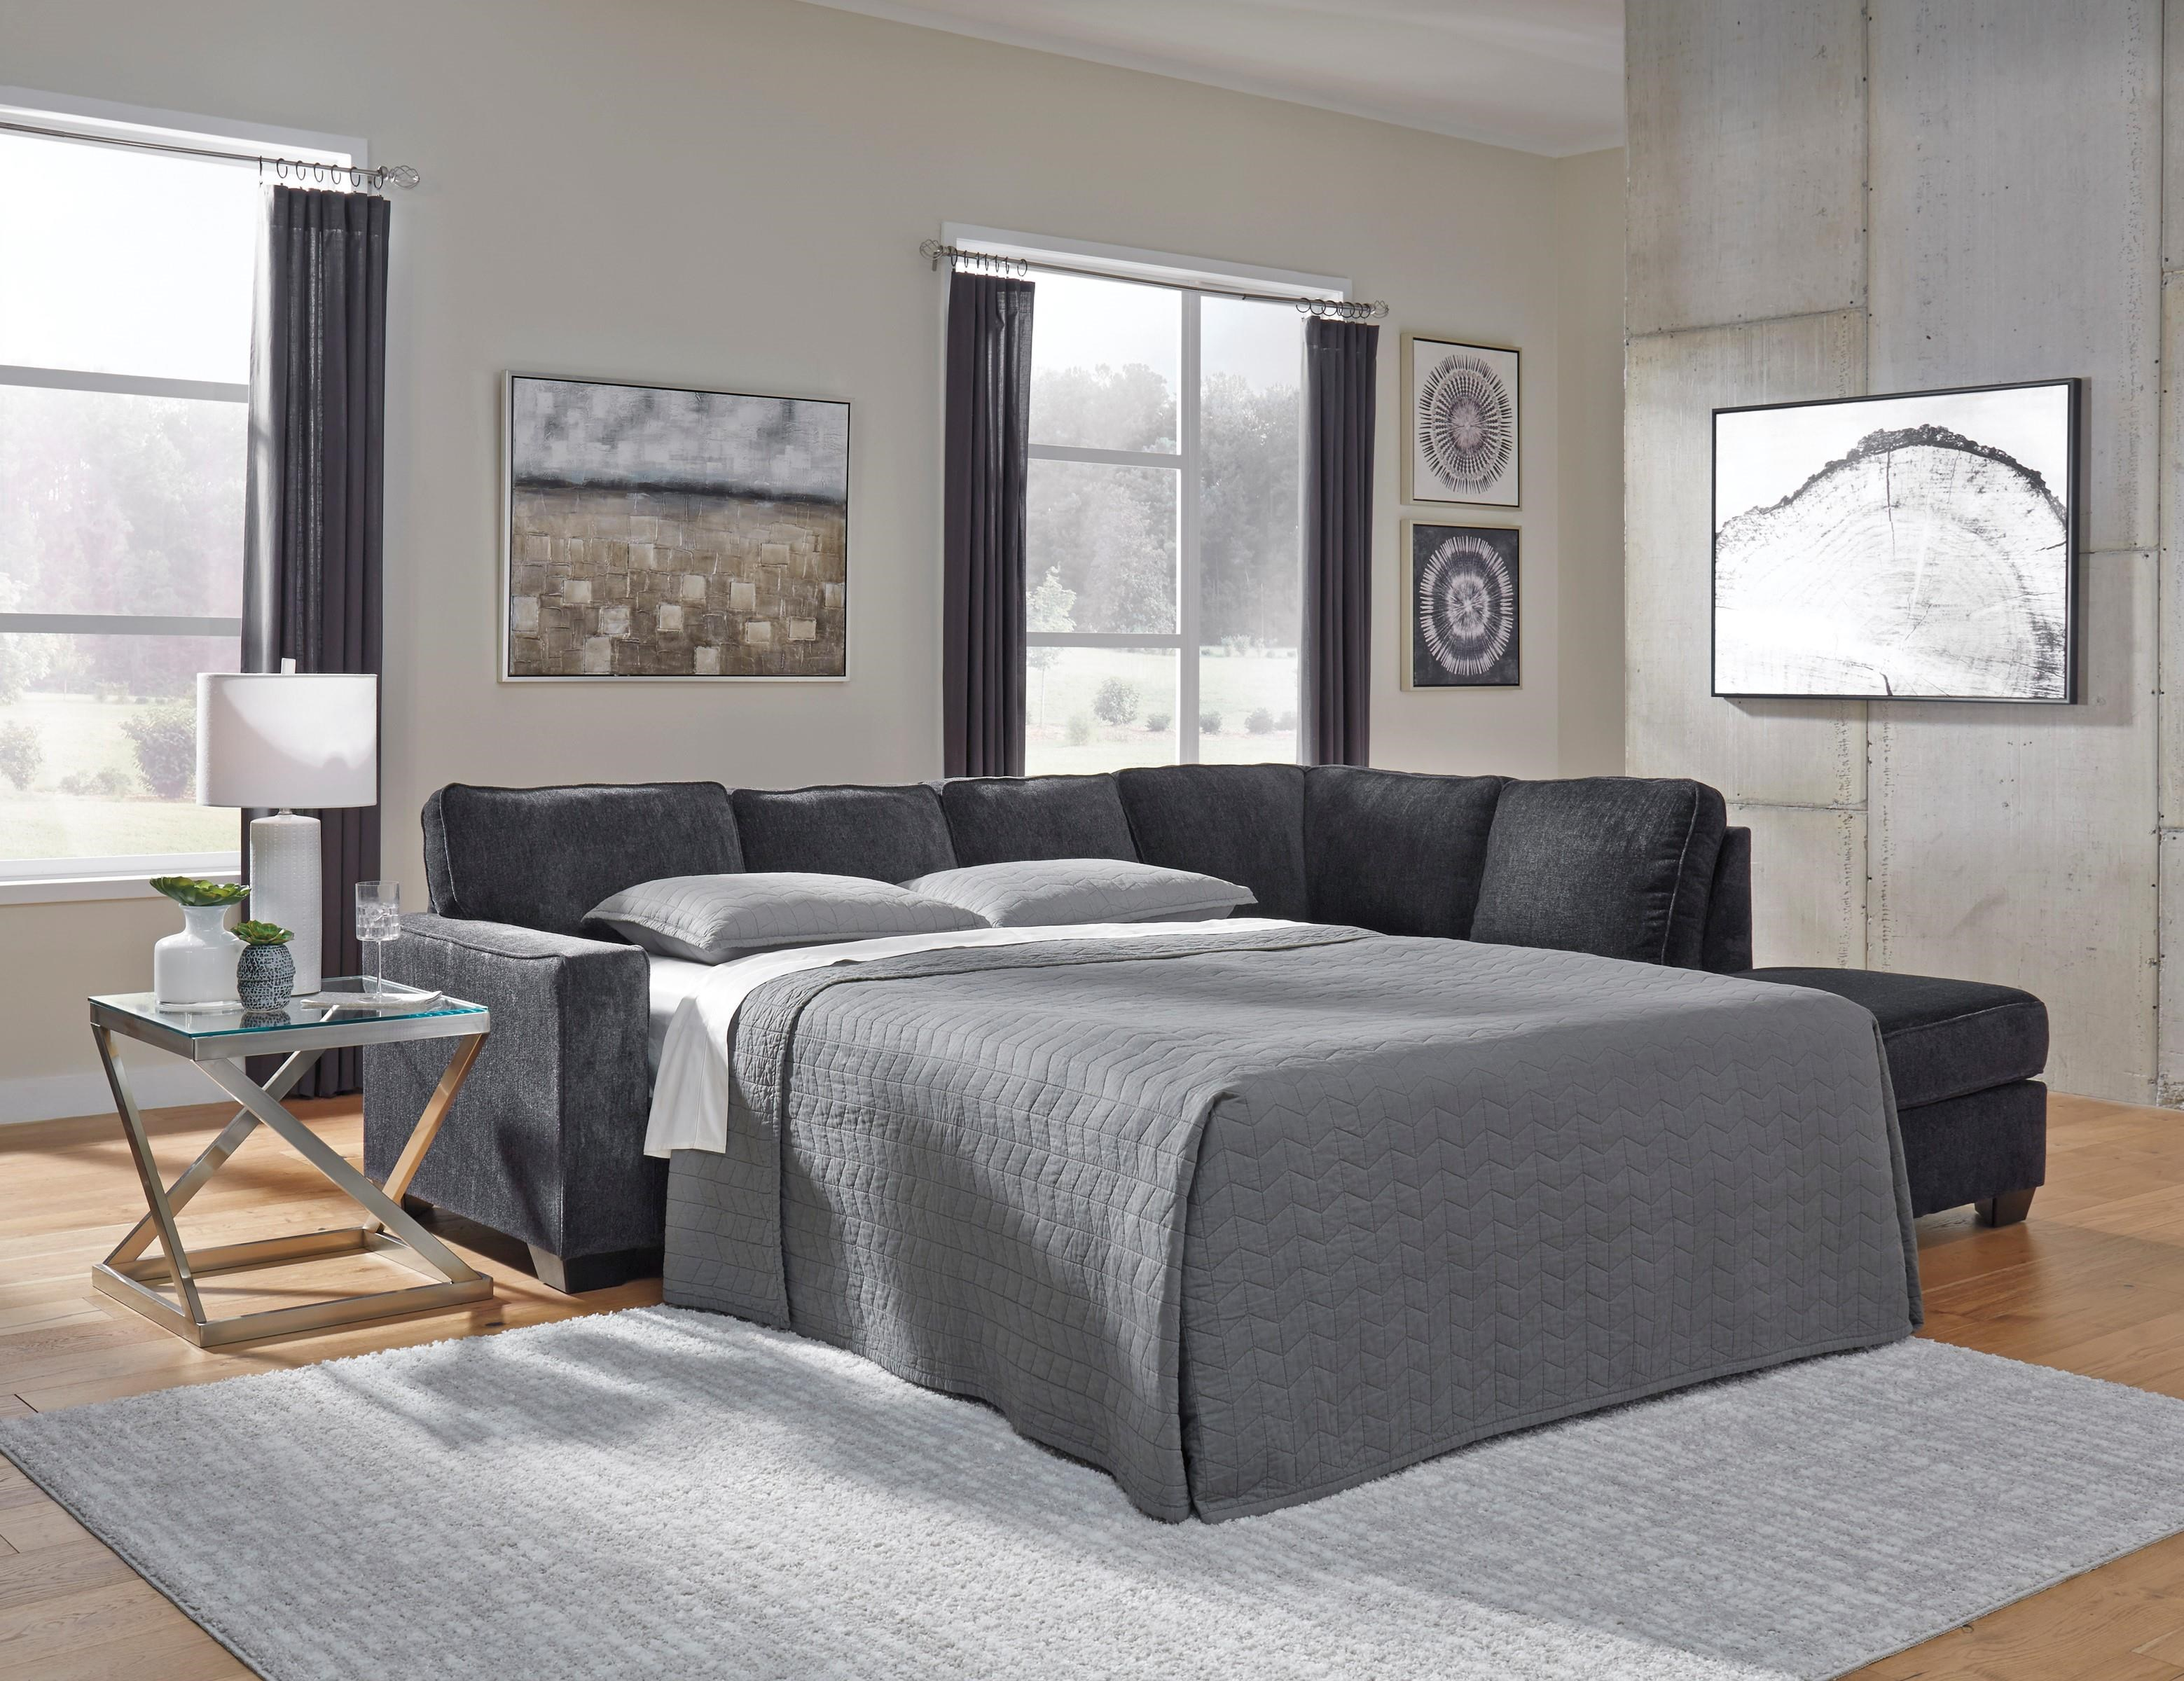 2 PC Sleeper Sectional, Chair and Ottoman Se